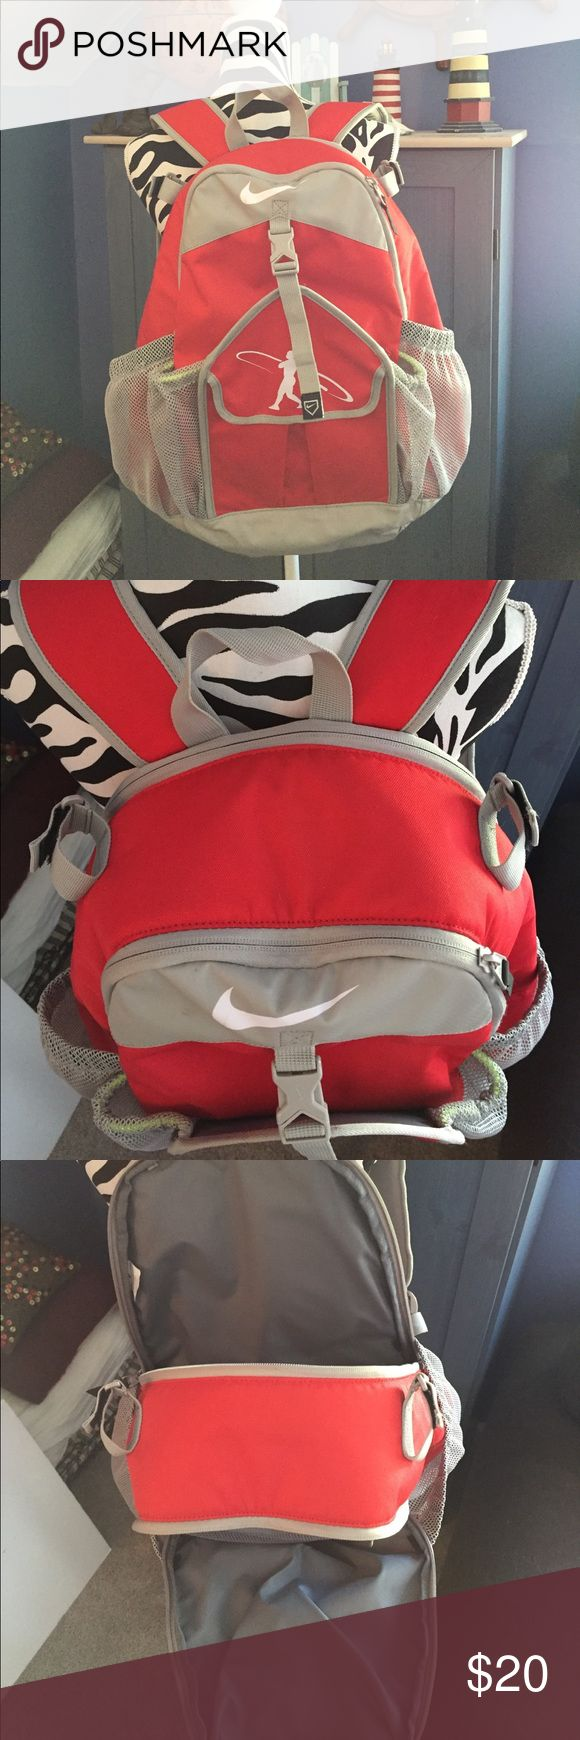 Nike Swingman Baseball Softball Bat Bag Backpack Used but in good condition - can hold two bats and plenty of additional room for all the other gear - spandex enclosure is a little loose on one side but still functional - there are also a few small stains on the bag Nike Other